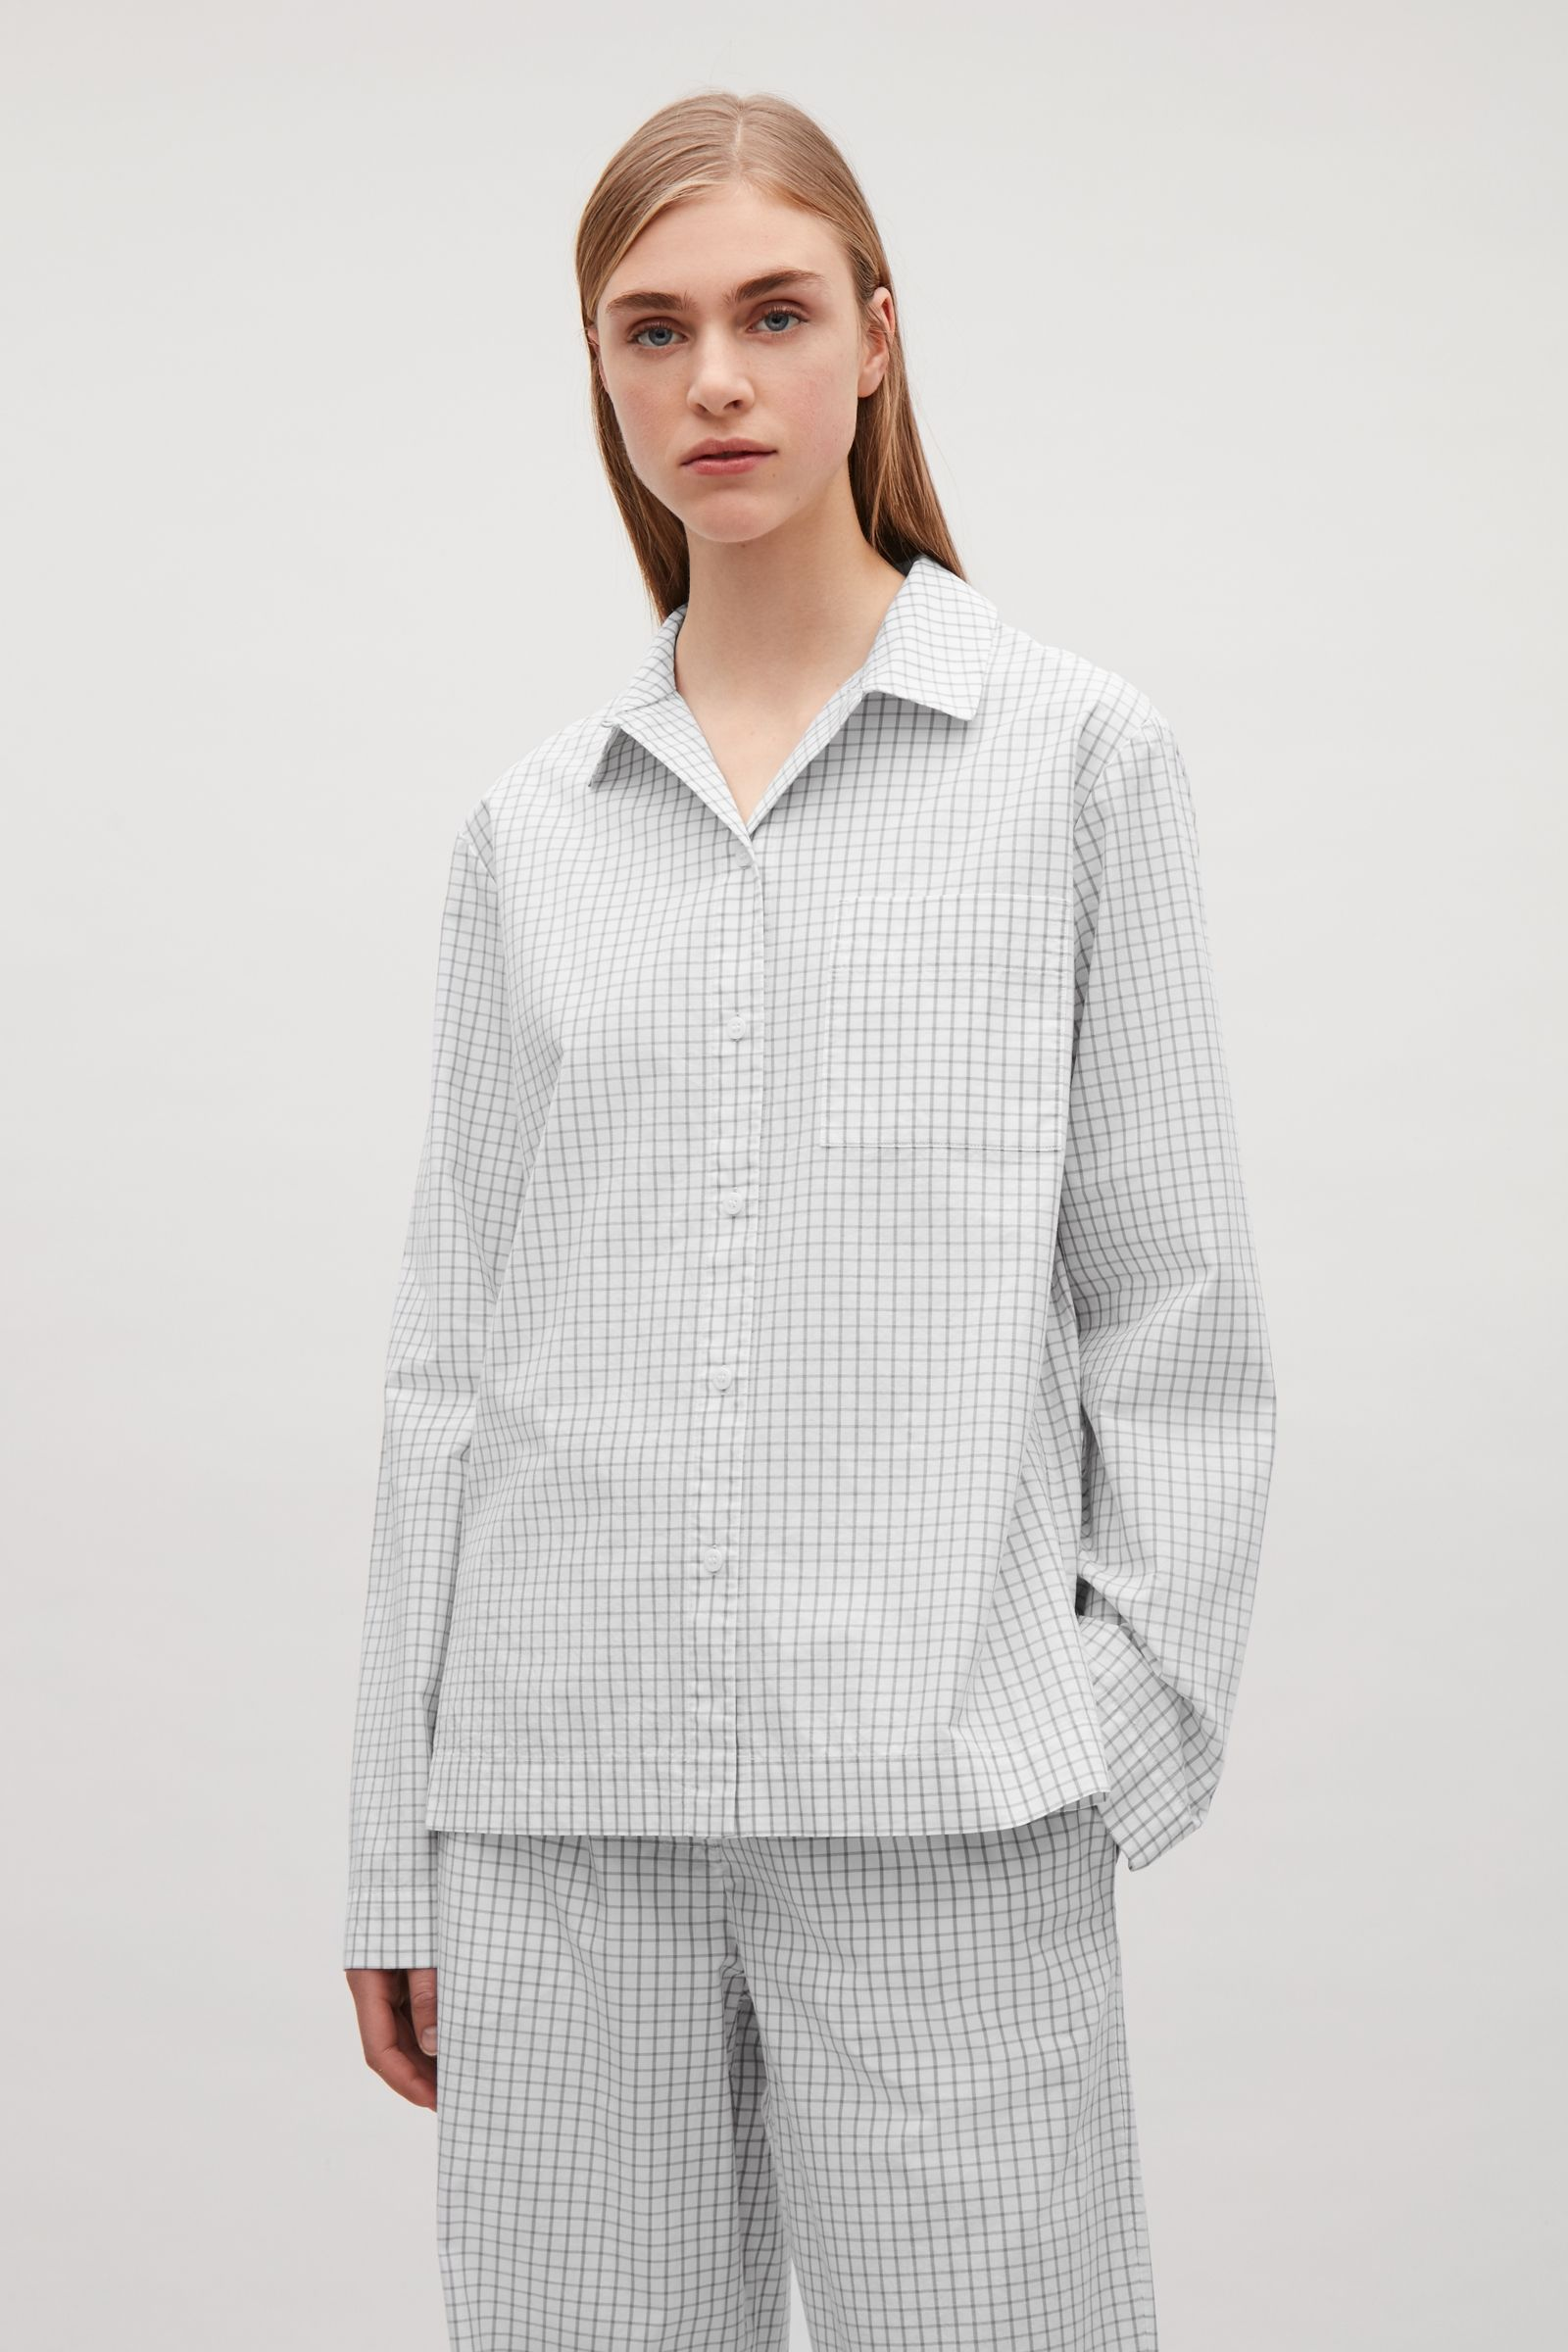 "Incredibly Soft ""Made in USA"" Love the Price! Pajamas Flannel Check"